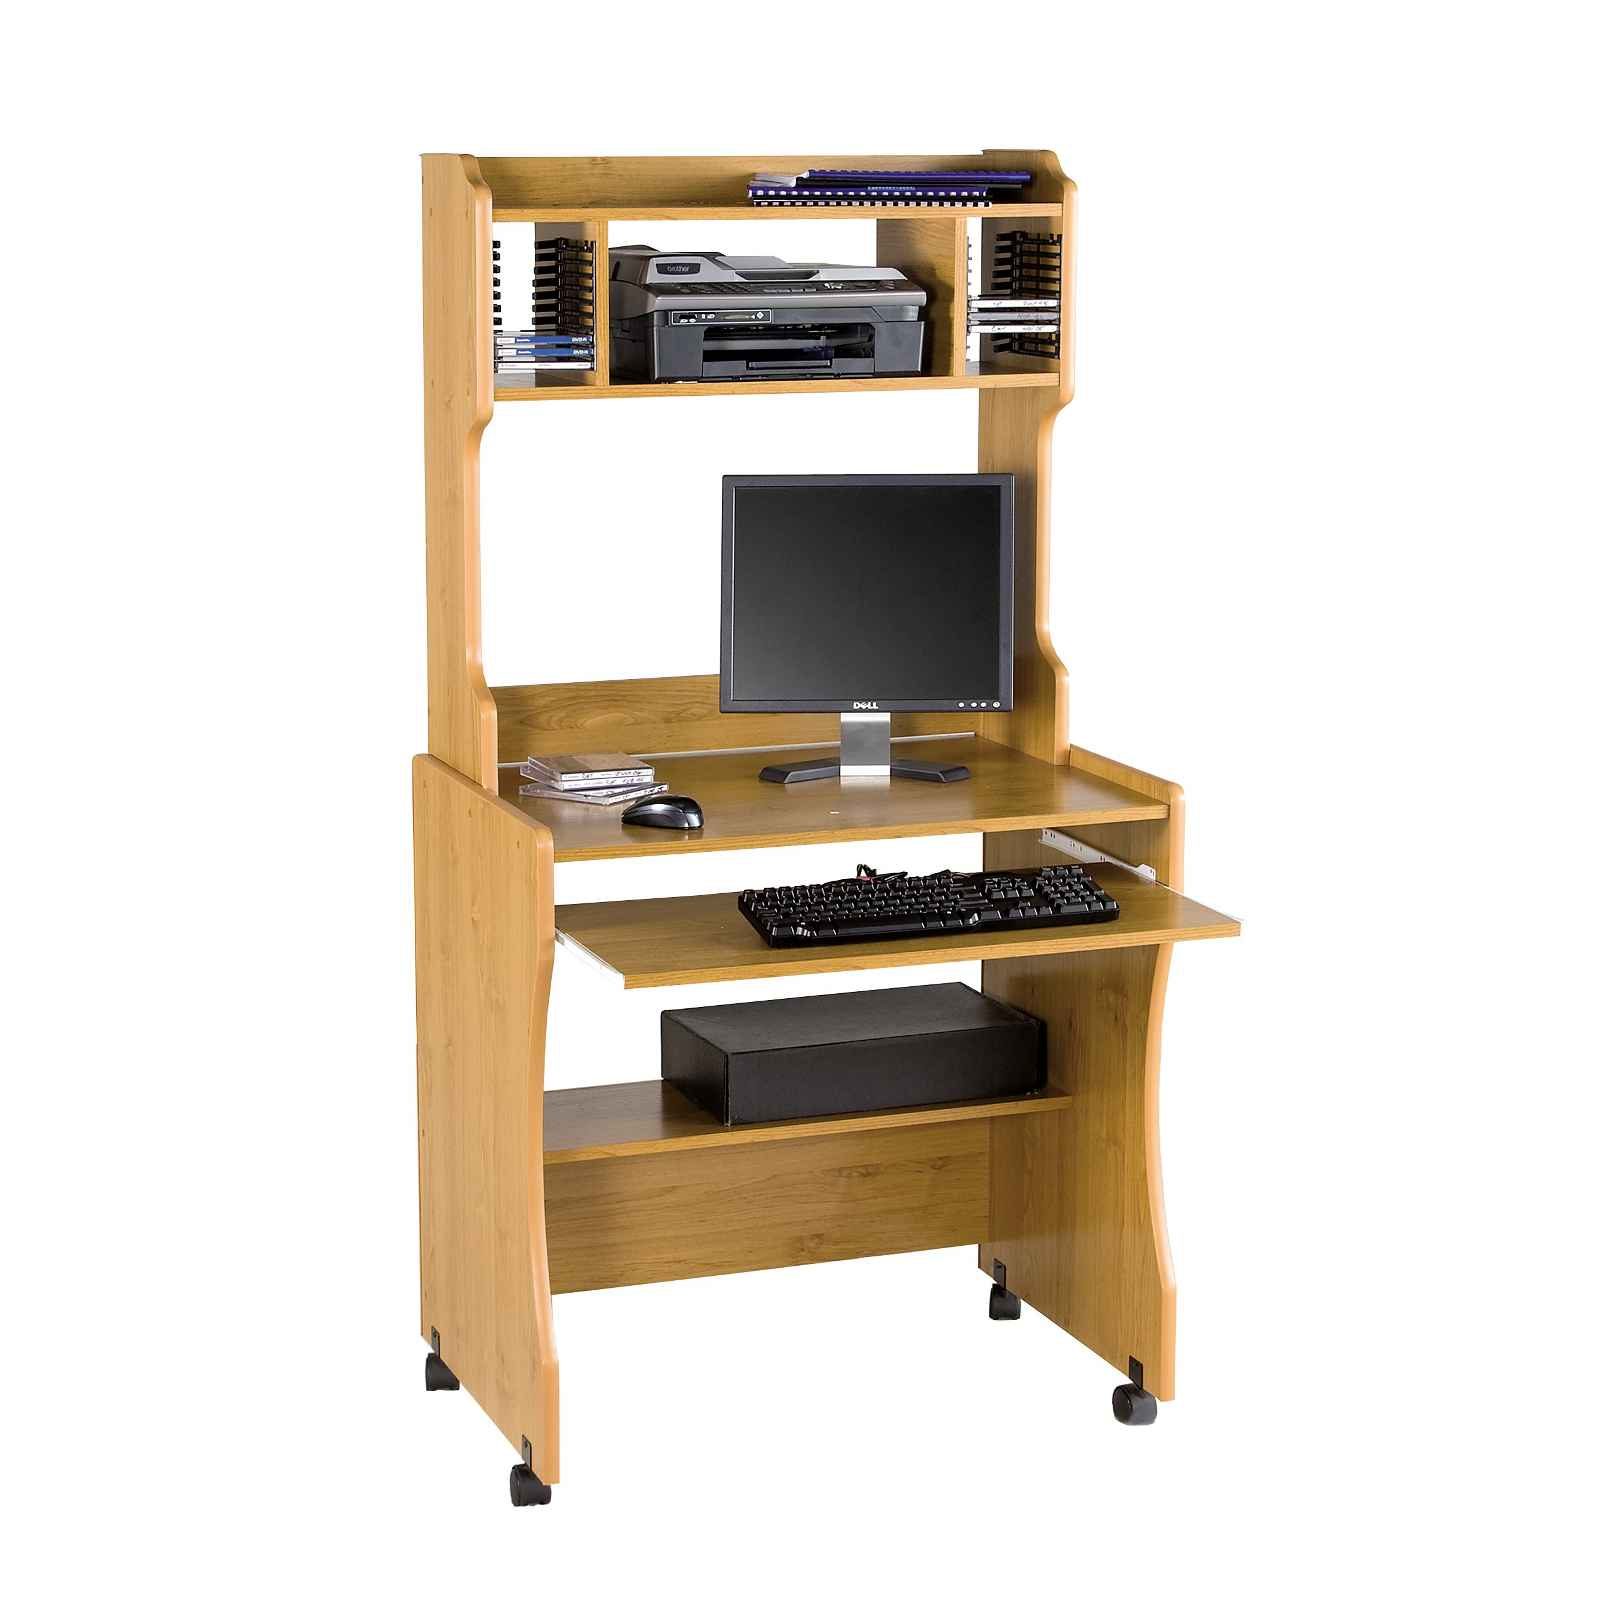 Woodwork Wooden Computer Desk Plans PDF Plans